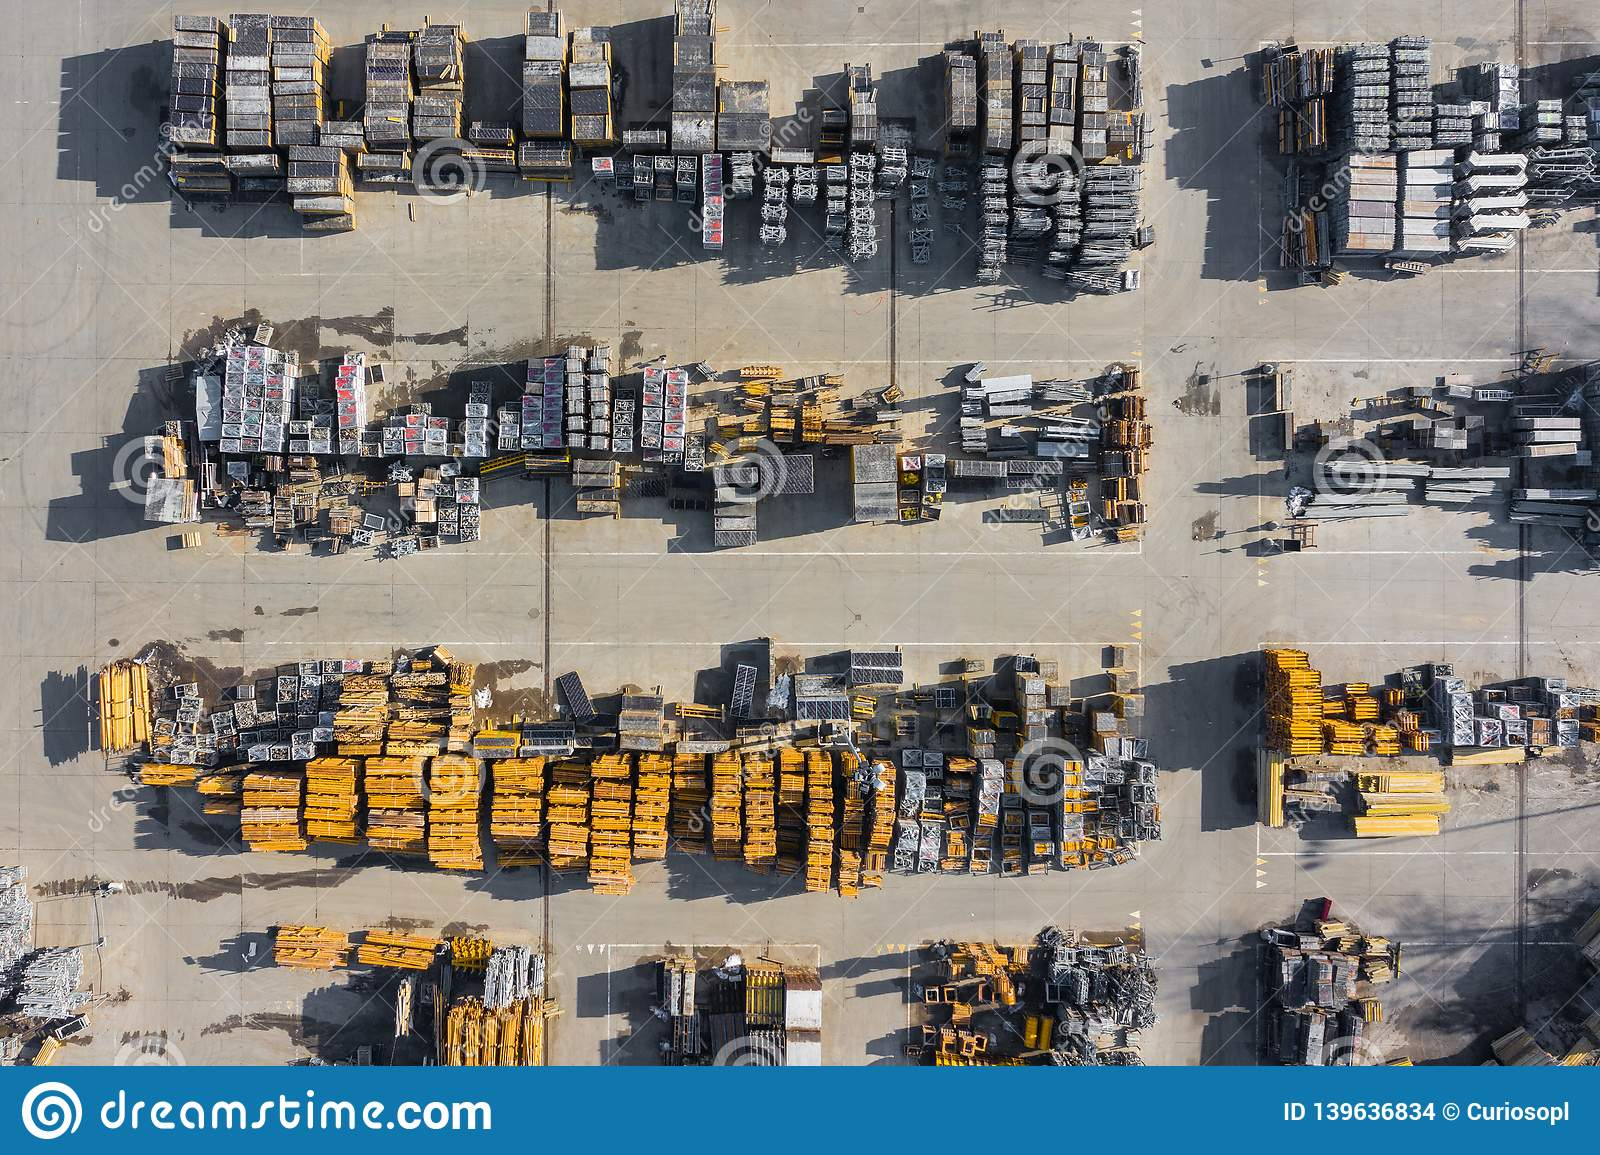 Aerial view of storage place. Construction materials in industrial city zone from above. Top view. Photo captured with drone